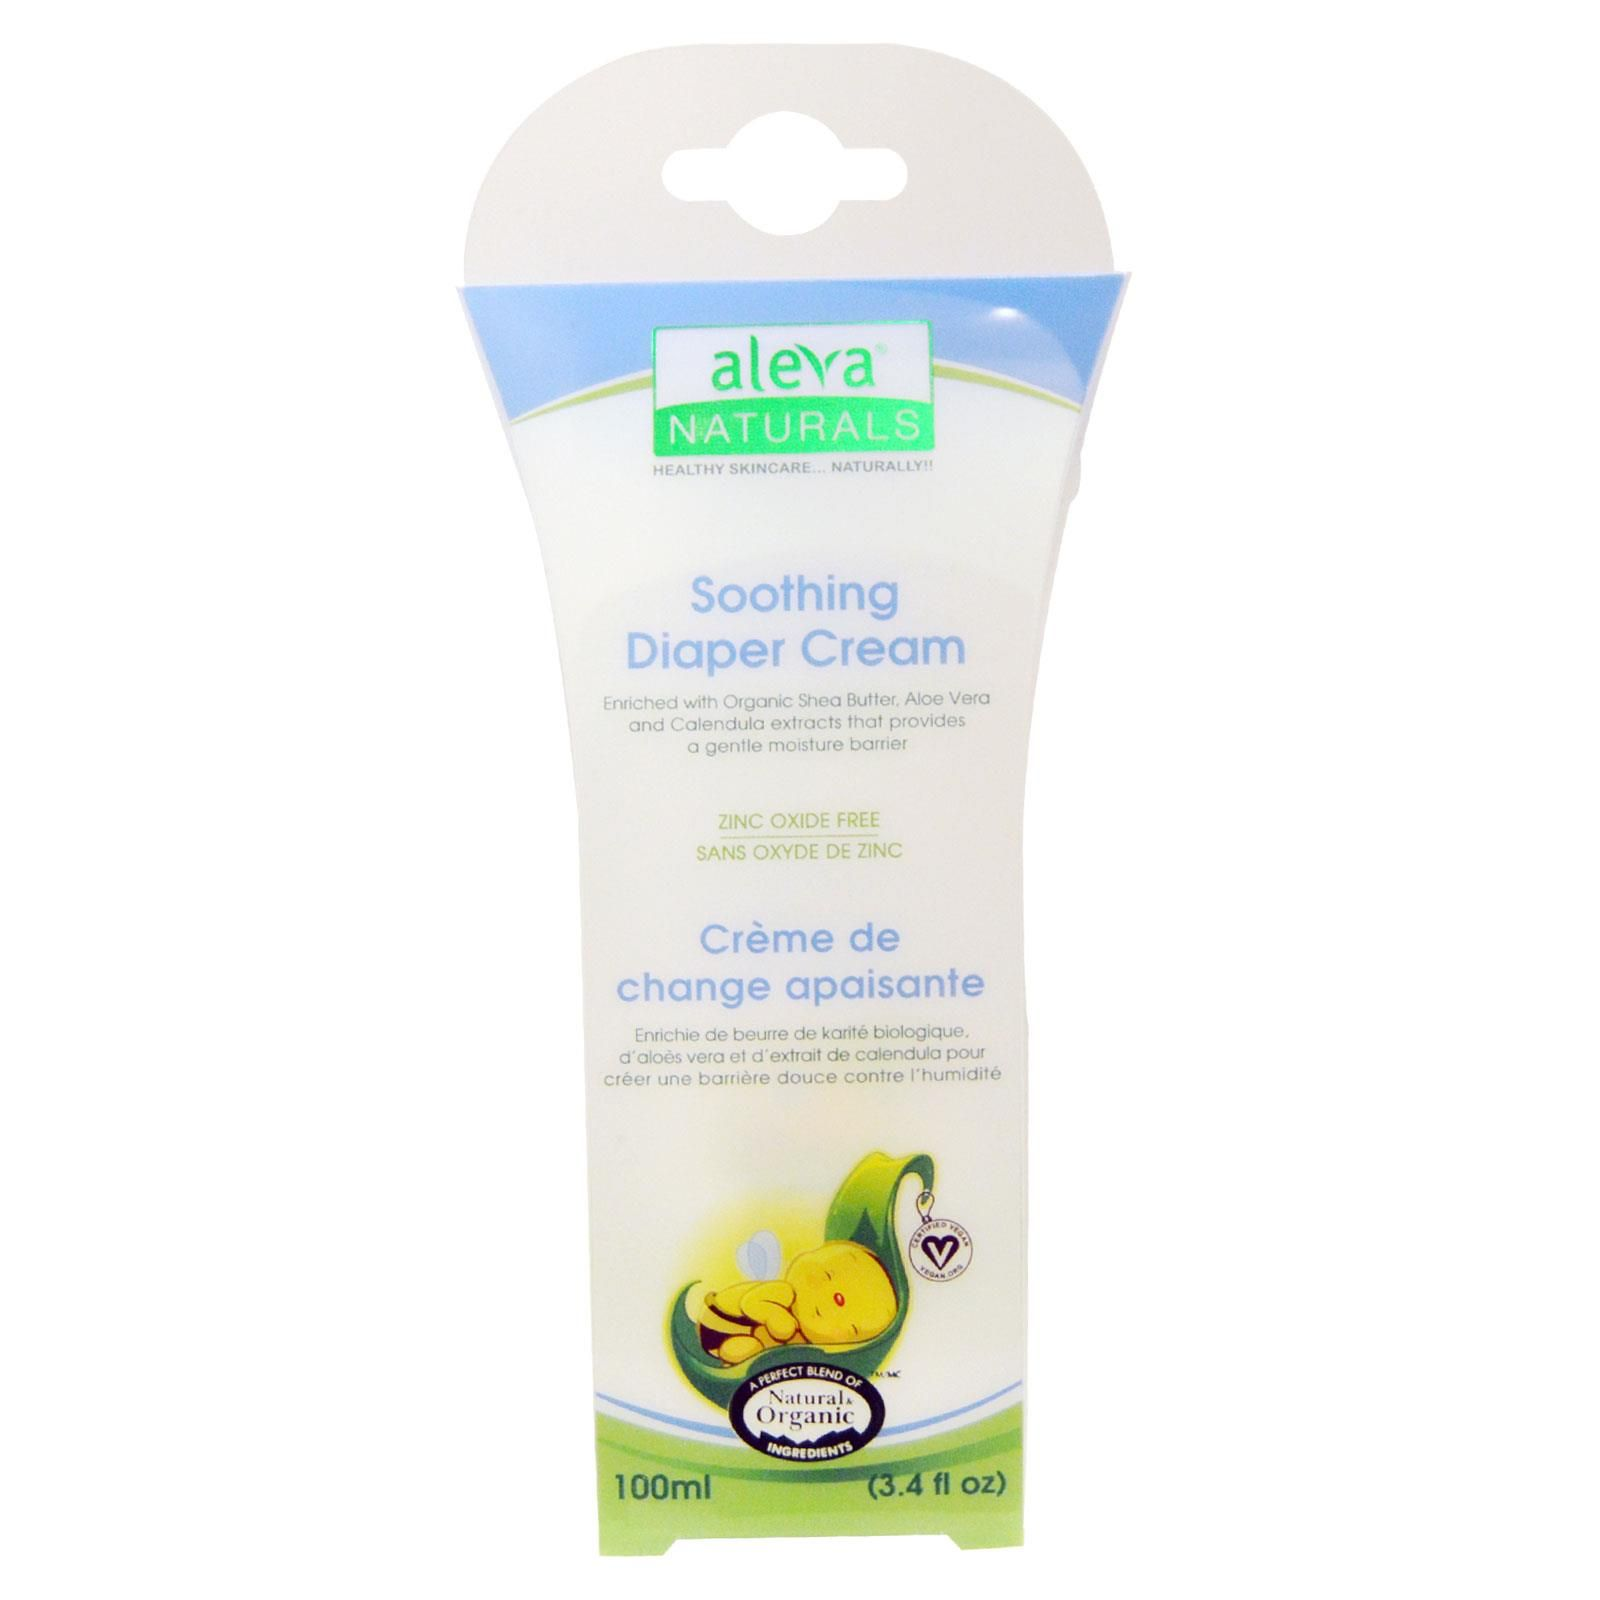 Aleva Naturals, Soothing Diaper Cream, 3.4 fl oz (100 ml)- Save extra with Iherb promo coupon code YUY952 -   Visit iherb specials for latest discounts: http://www.iherb.com/specials?rcode=yuy952